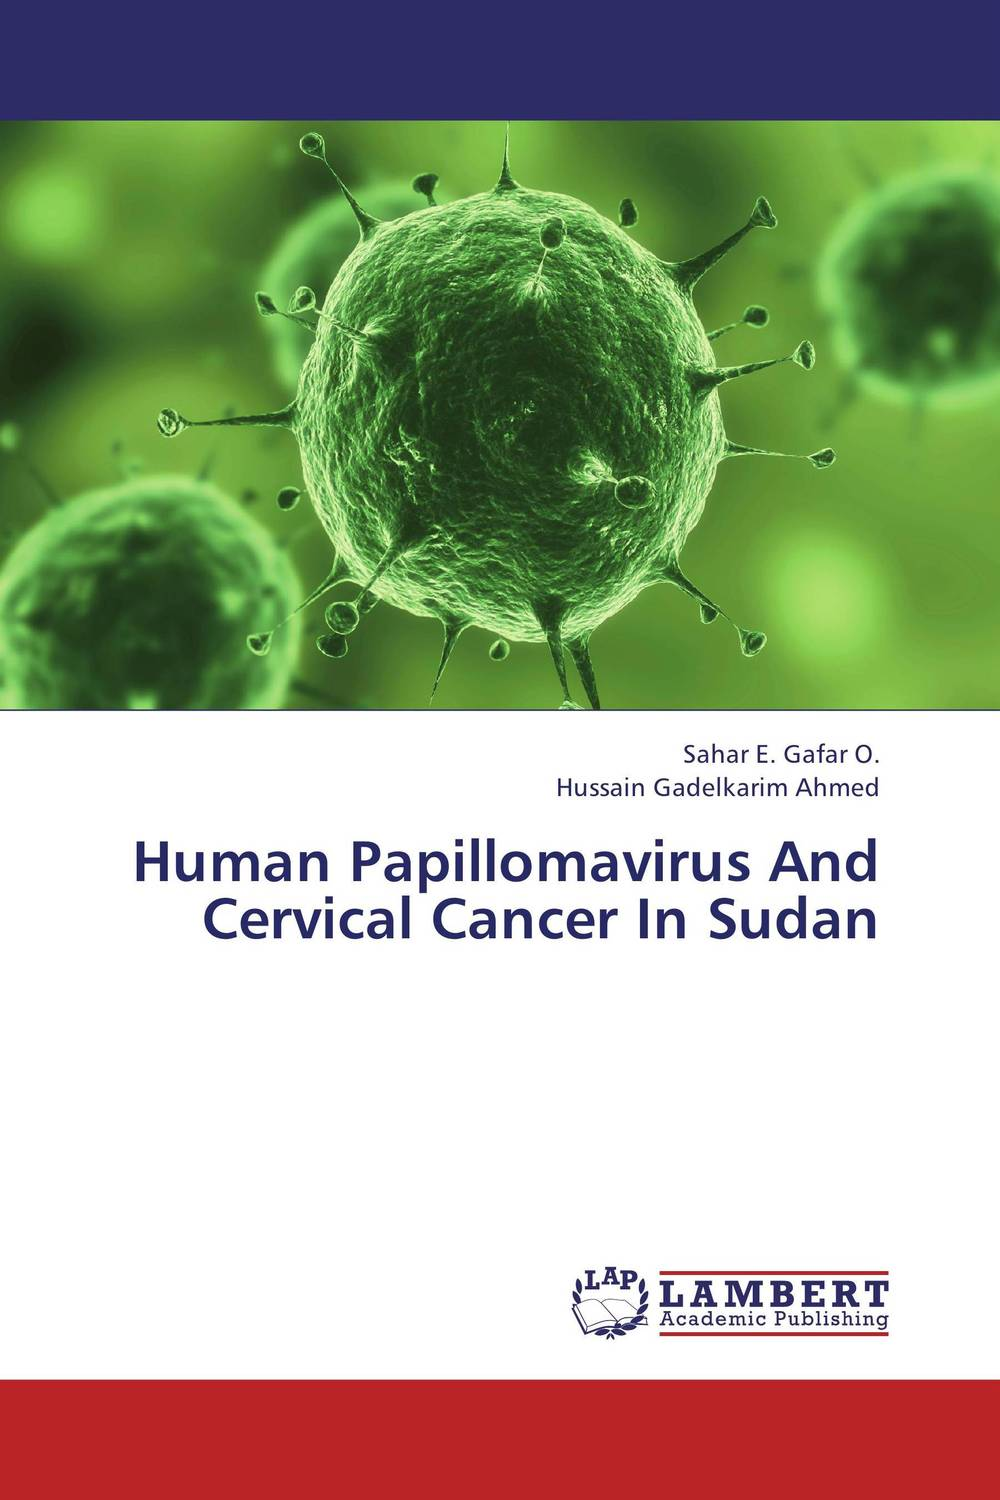 Human Papillomavirus And Cervical Cancer In Sudan late stage diagnosis of cervical cancer